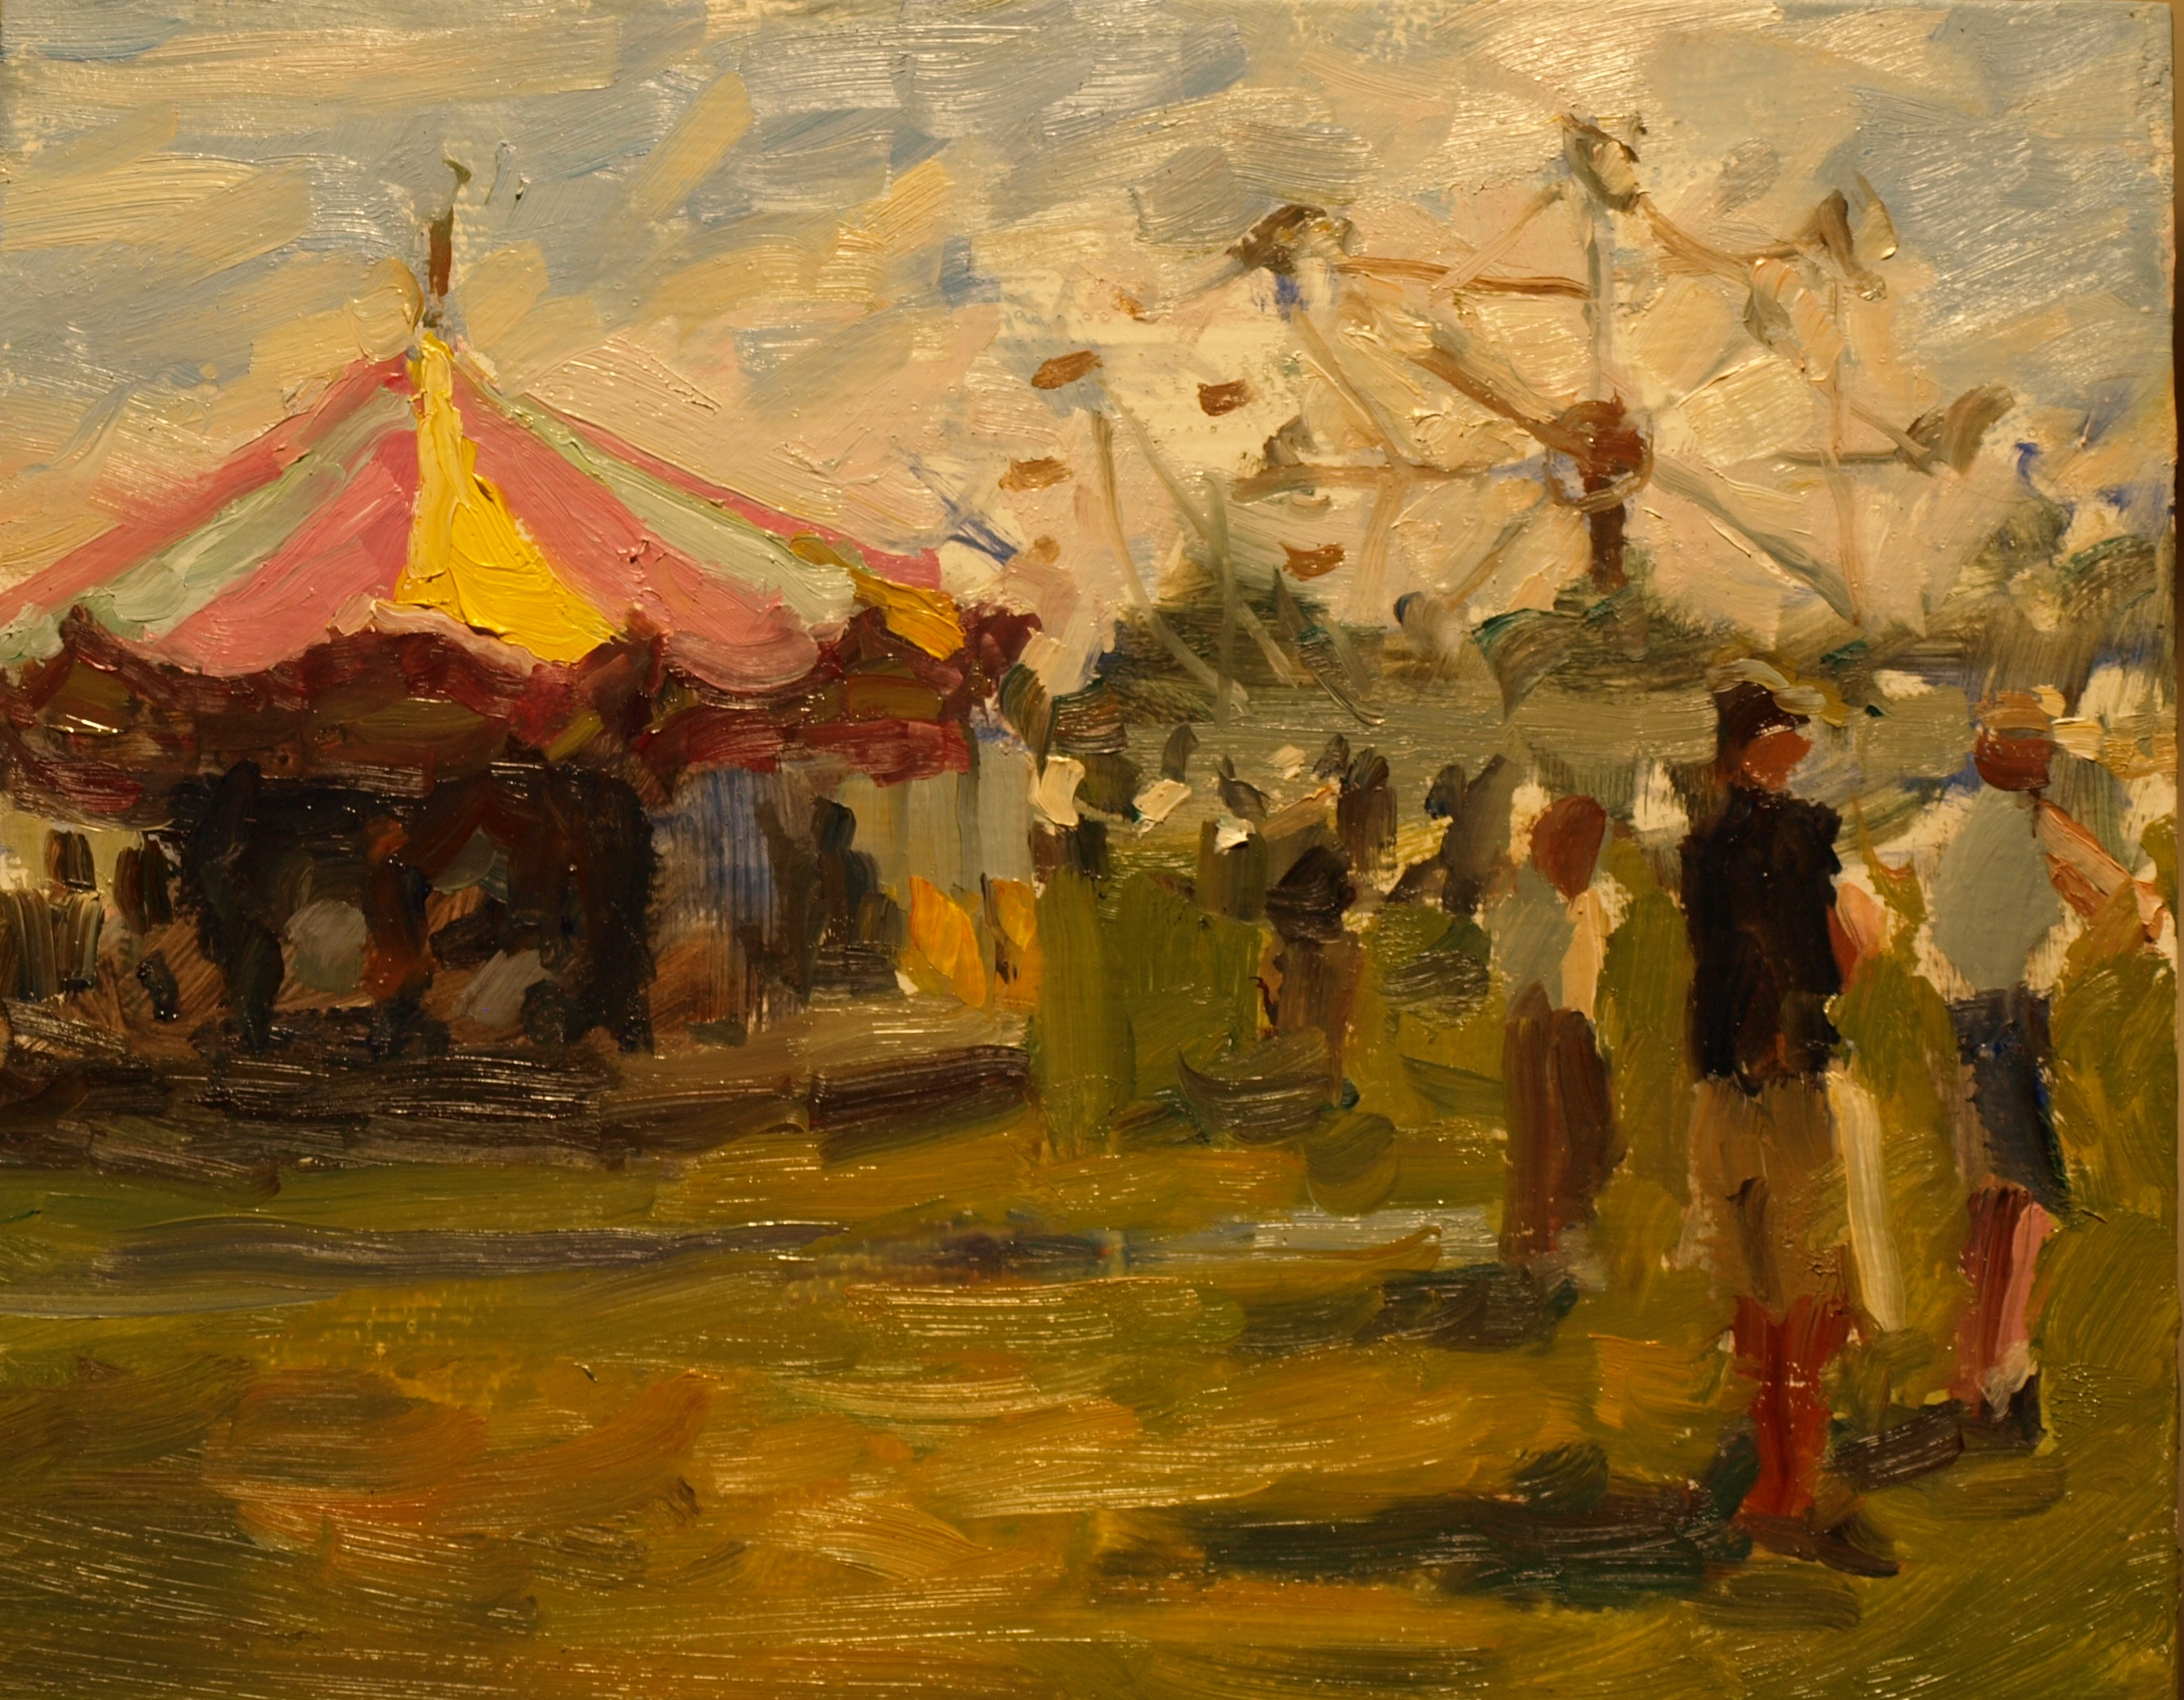 Country Fair, Oil on Panel, 8 x 10 Inches, by Susan Grisell, $200